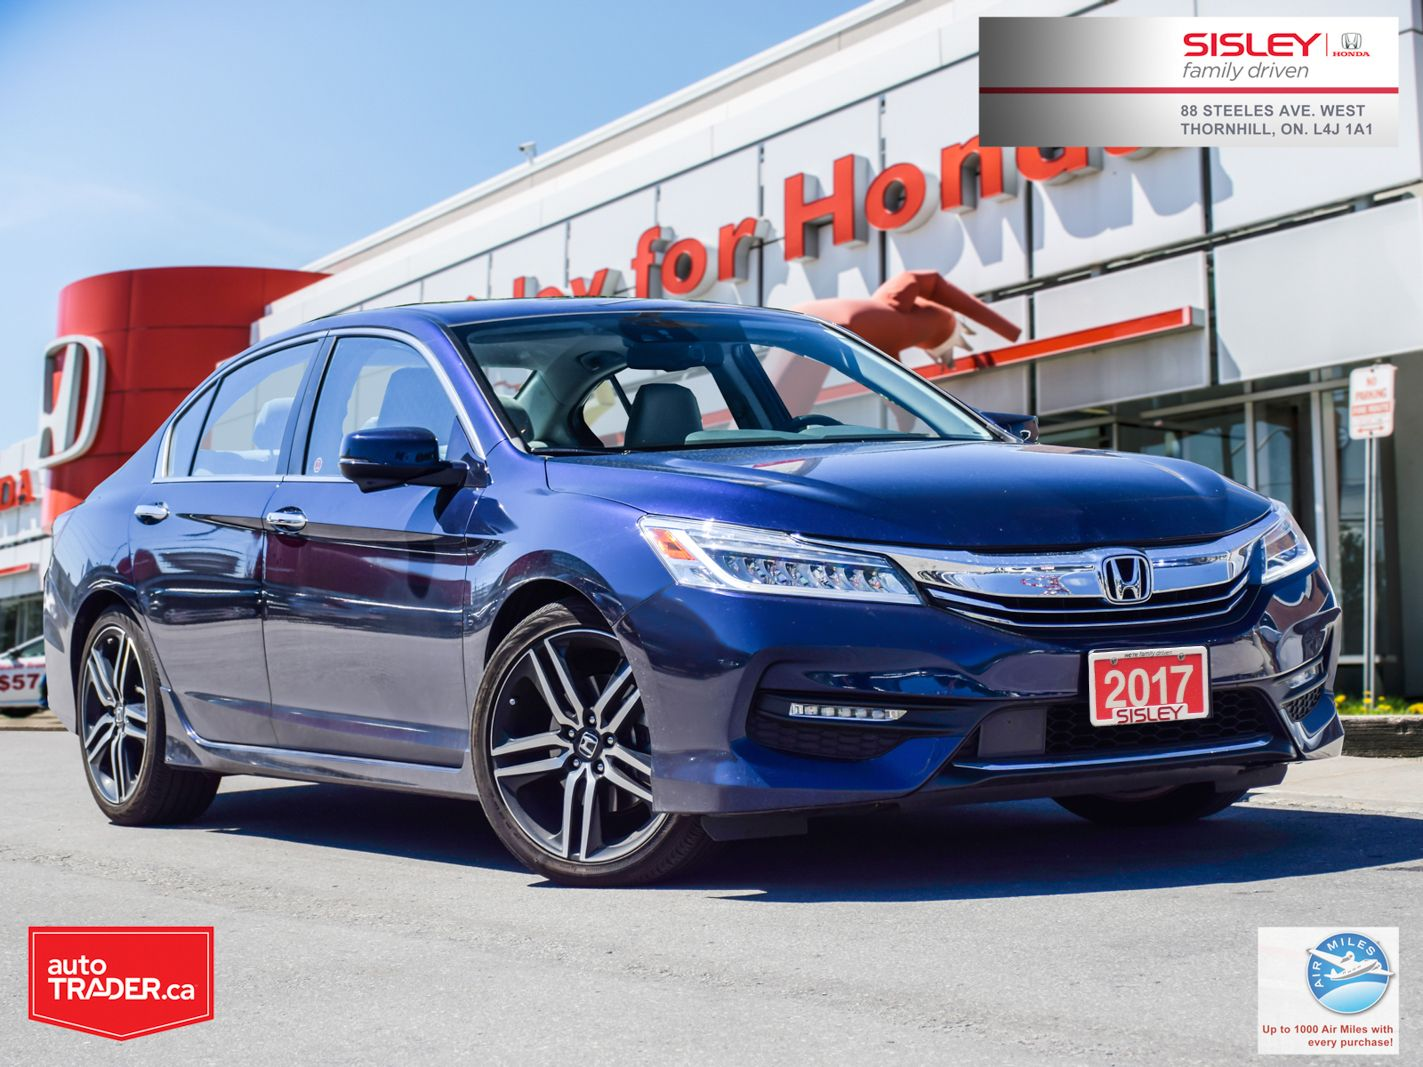 2017 Honda Accord Sedan Image